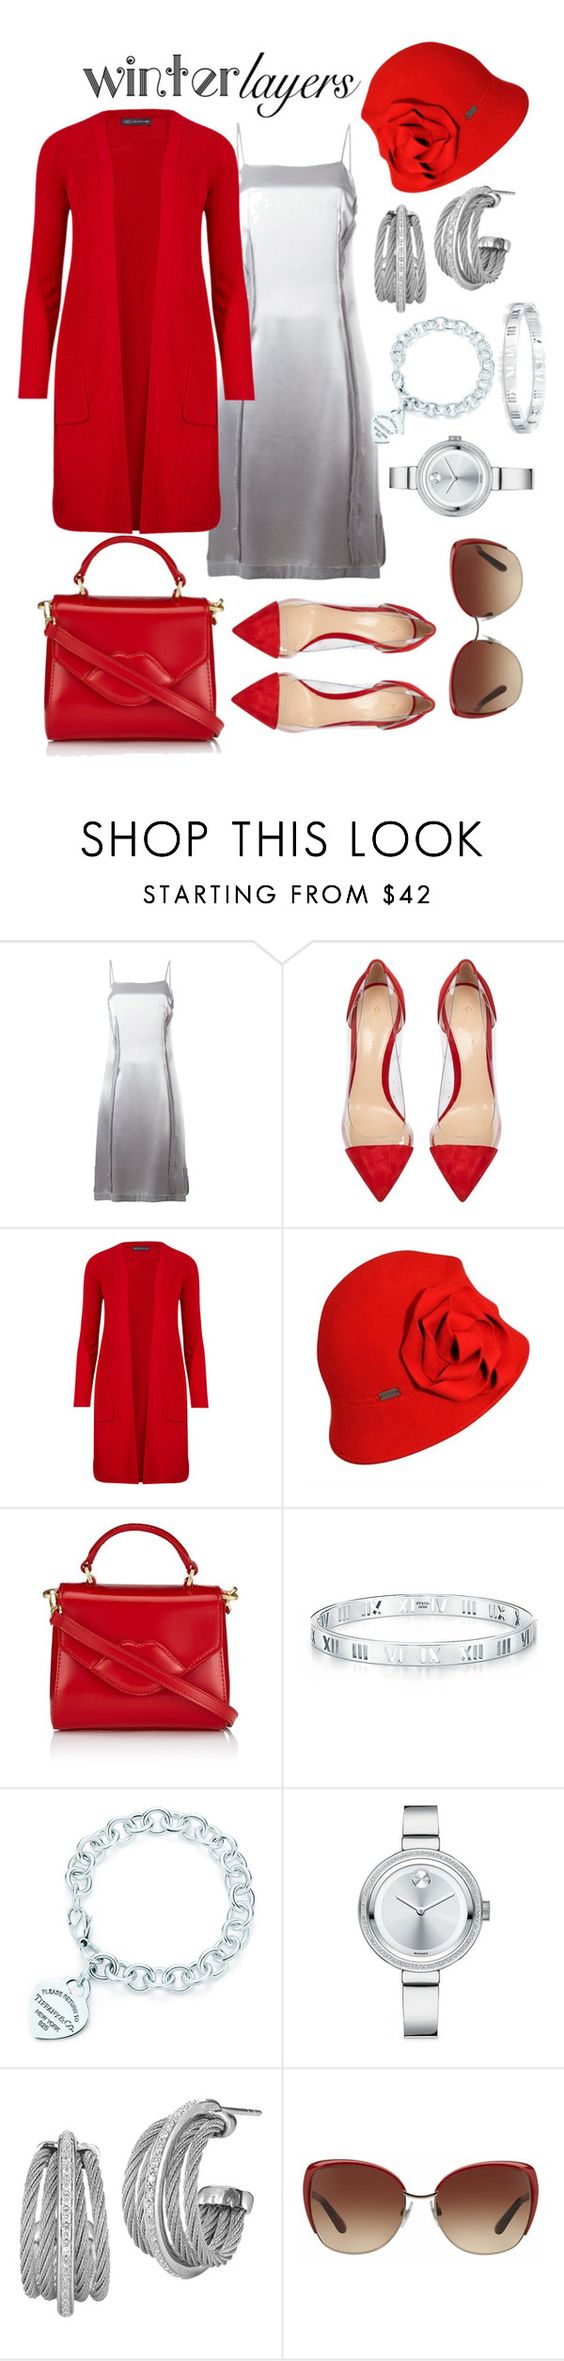 """""""Winter Layers: Slip Dress"""" by tweedleduh ❤ liked on Polyvore featuring moda, Maison Margiela, Gianvito Rossi, M&S Collection, Betmar, Lulu Guinness, Tiffany & Co., Movado, Charriol y Dolce&Gabbana"""